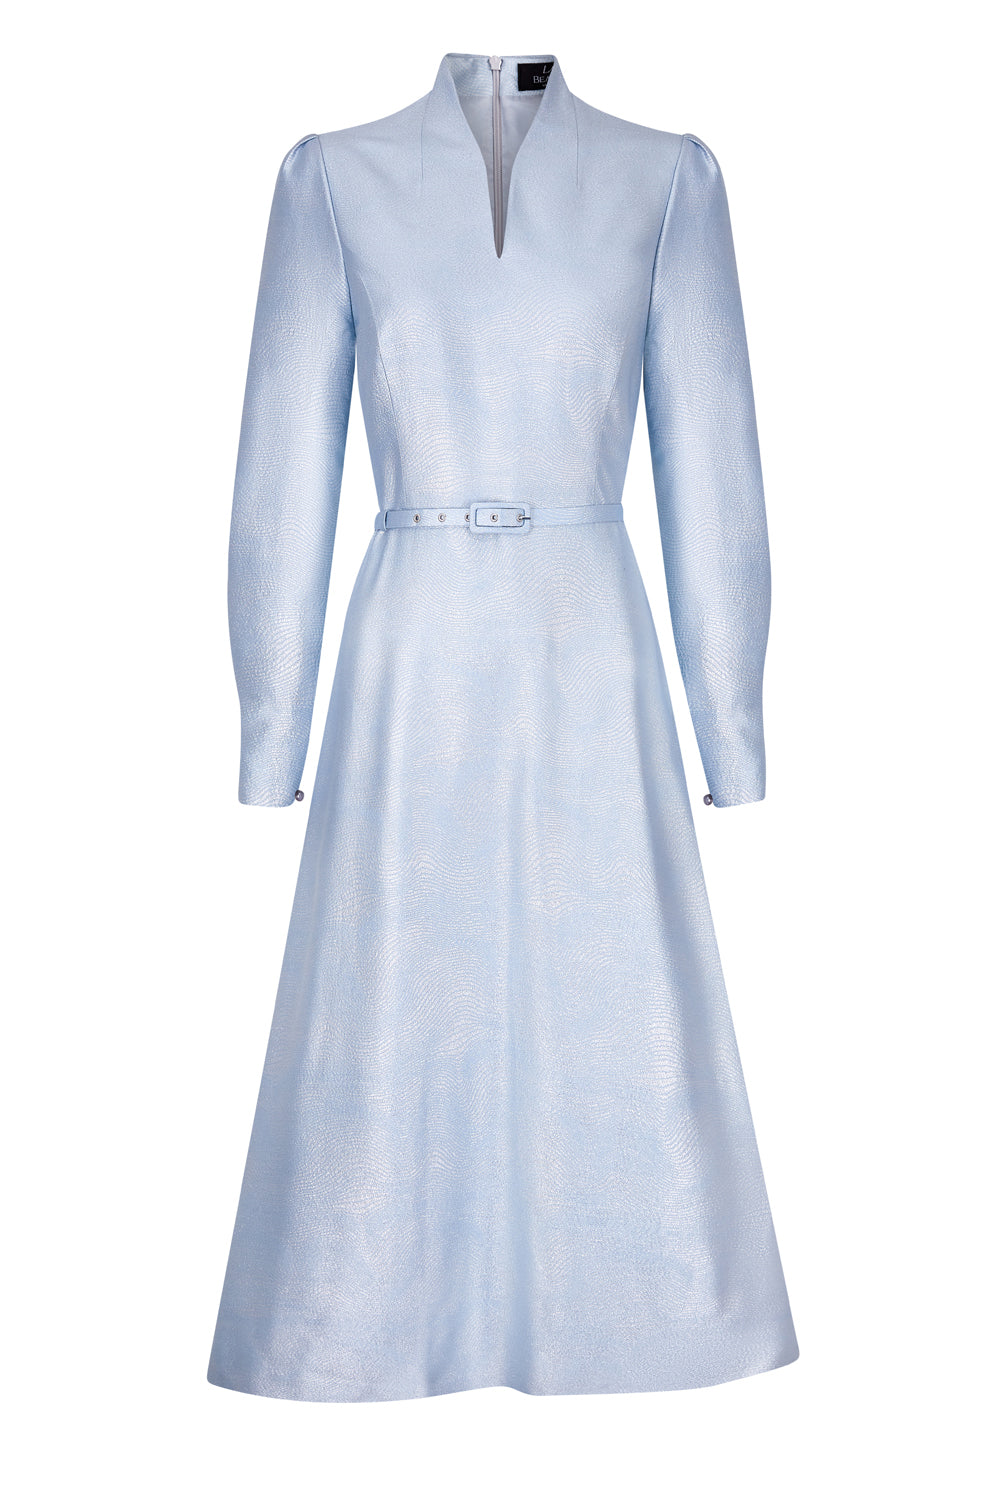 Ballerina Length Silk Dress in Pale Blue and Silver - Sophie